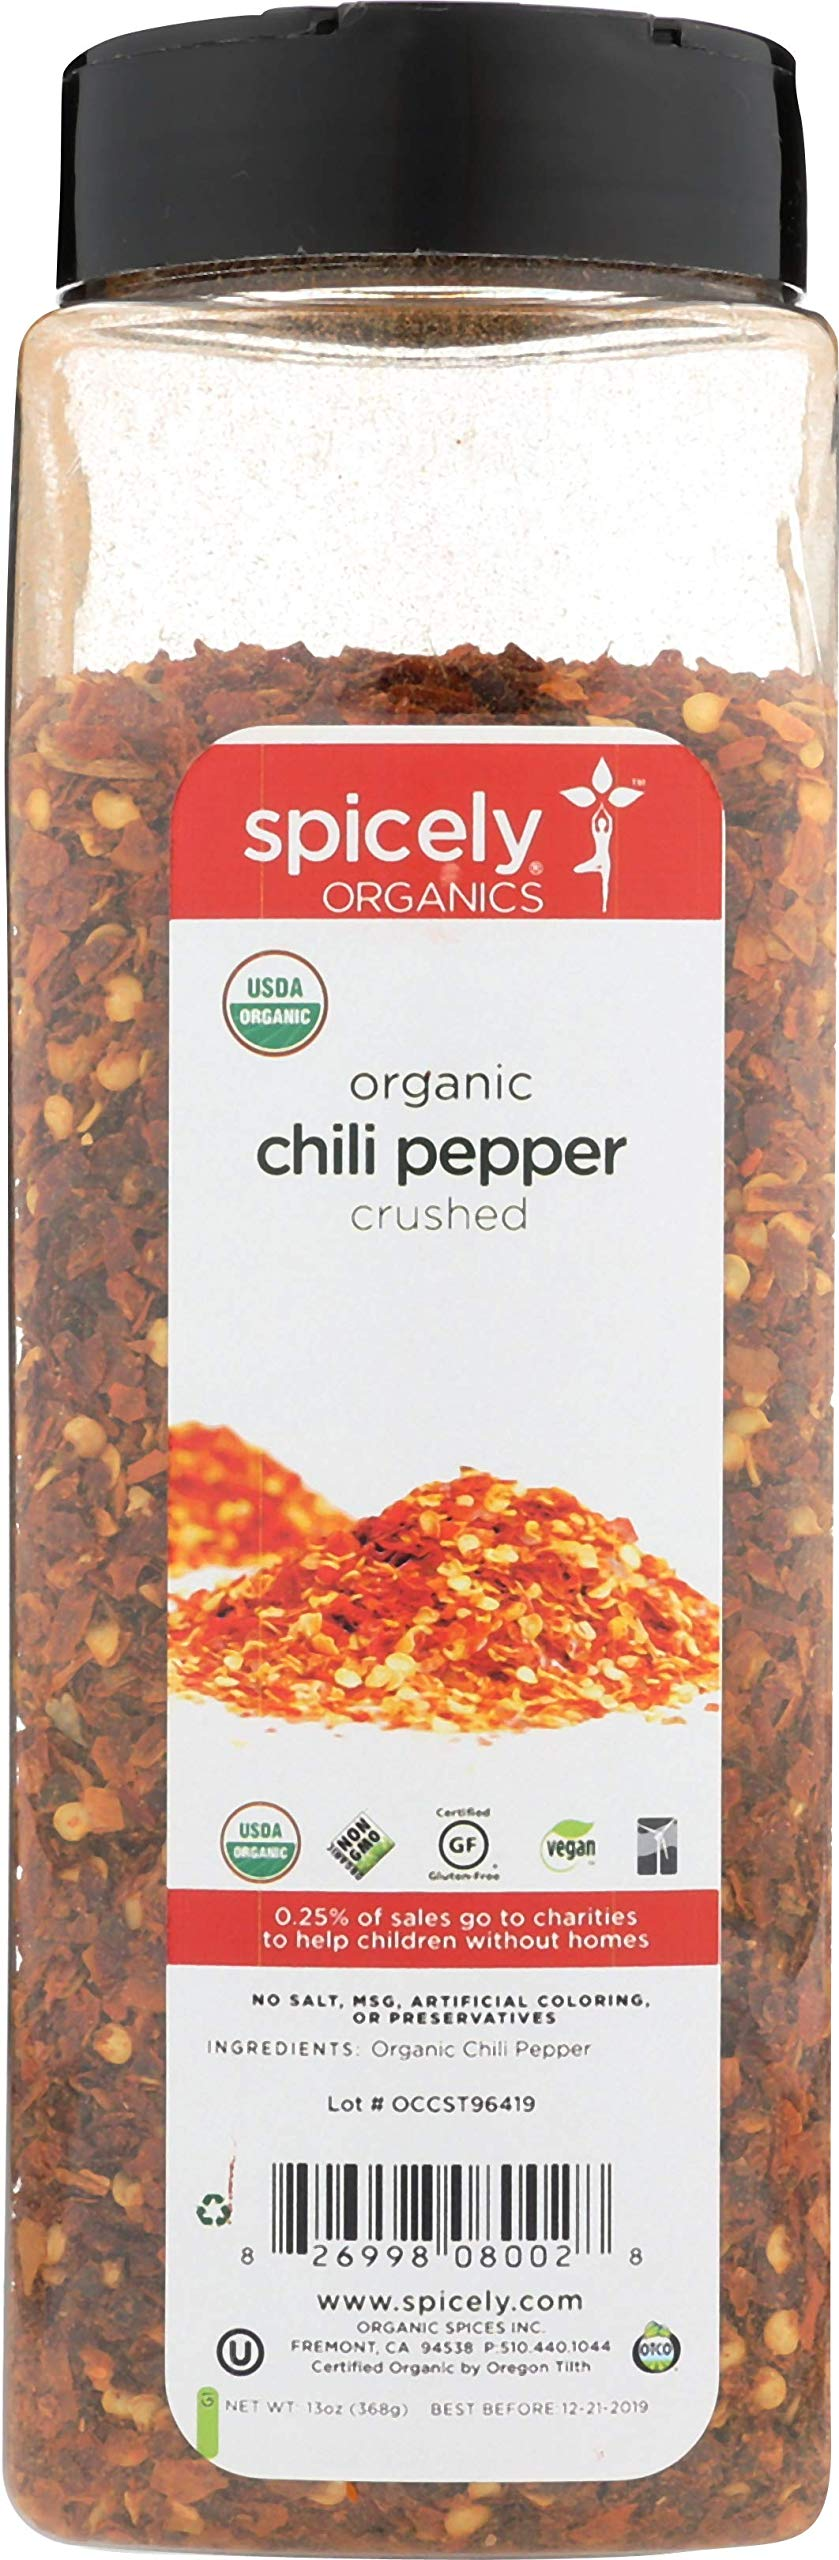 Spicely Organic Chili Crushed 13 Oz Certified Gluten Free